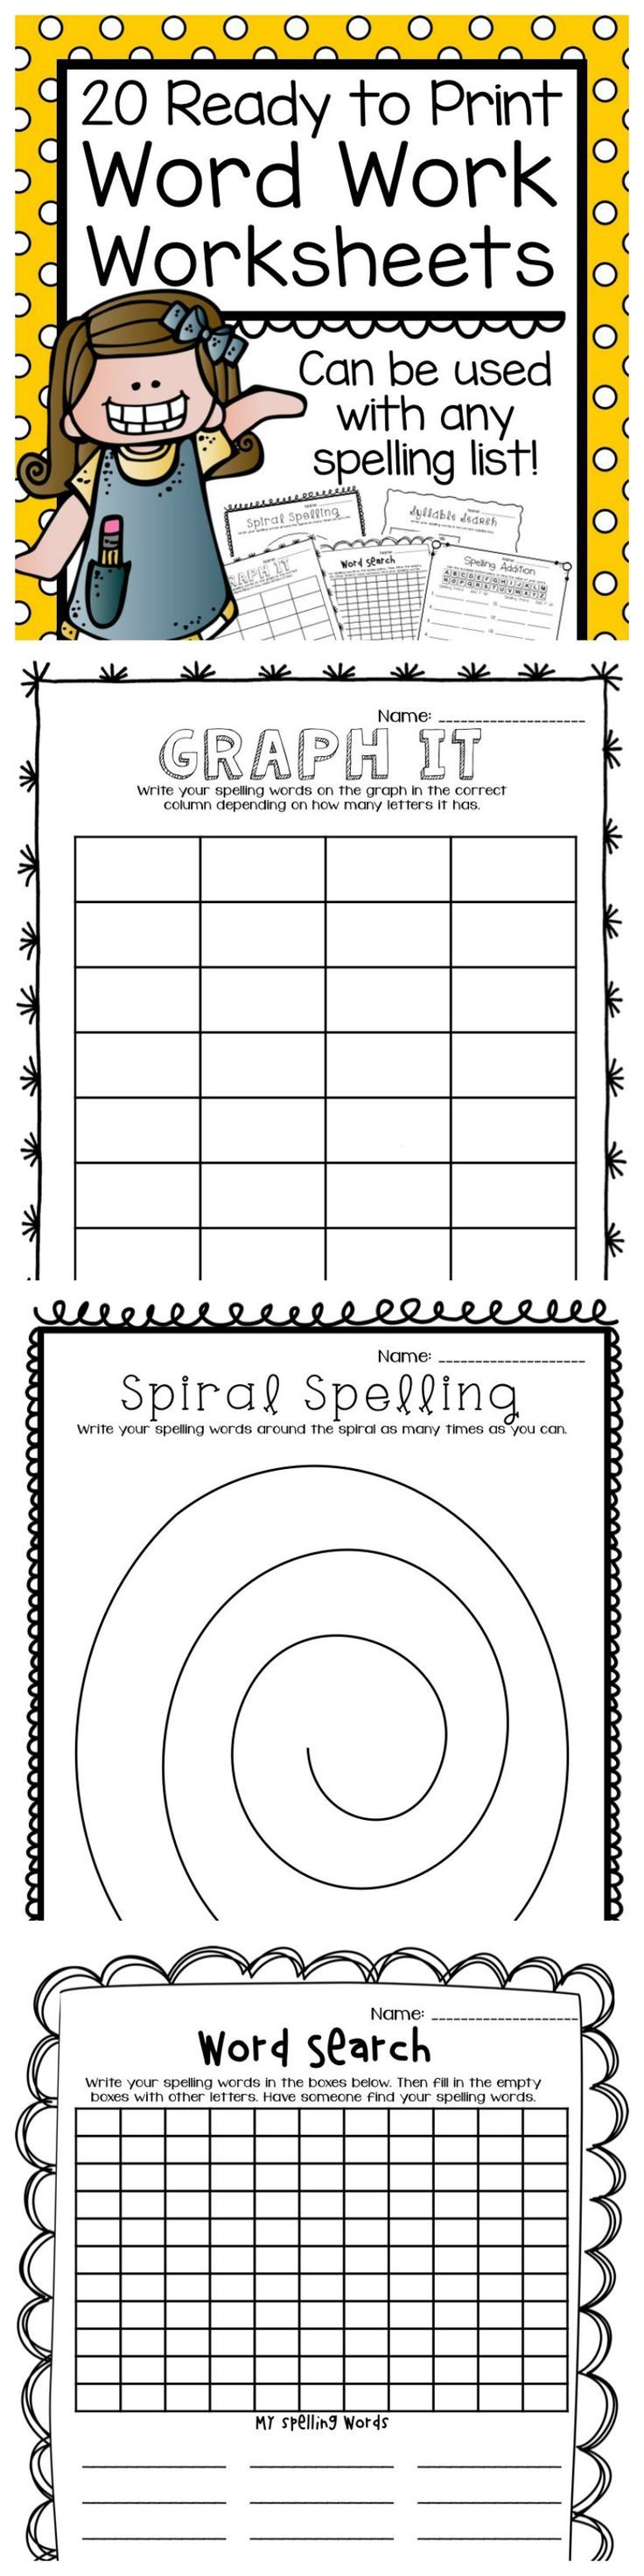 Word Work Worksheets                                                                                                                                                      More